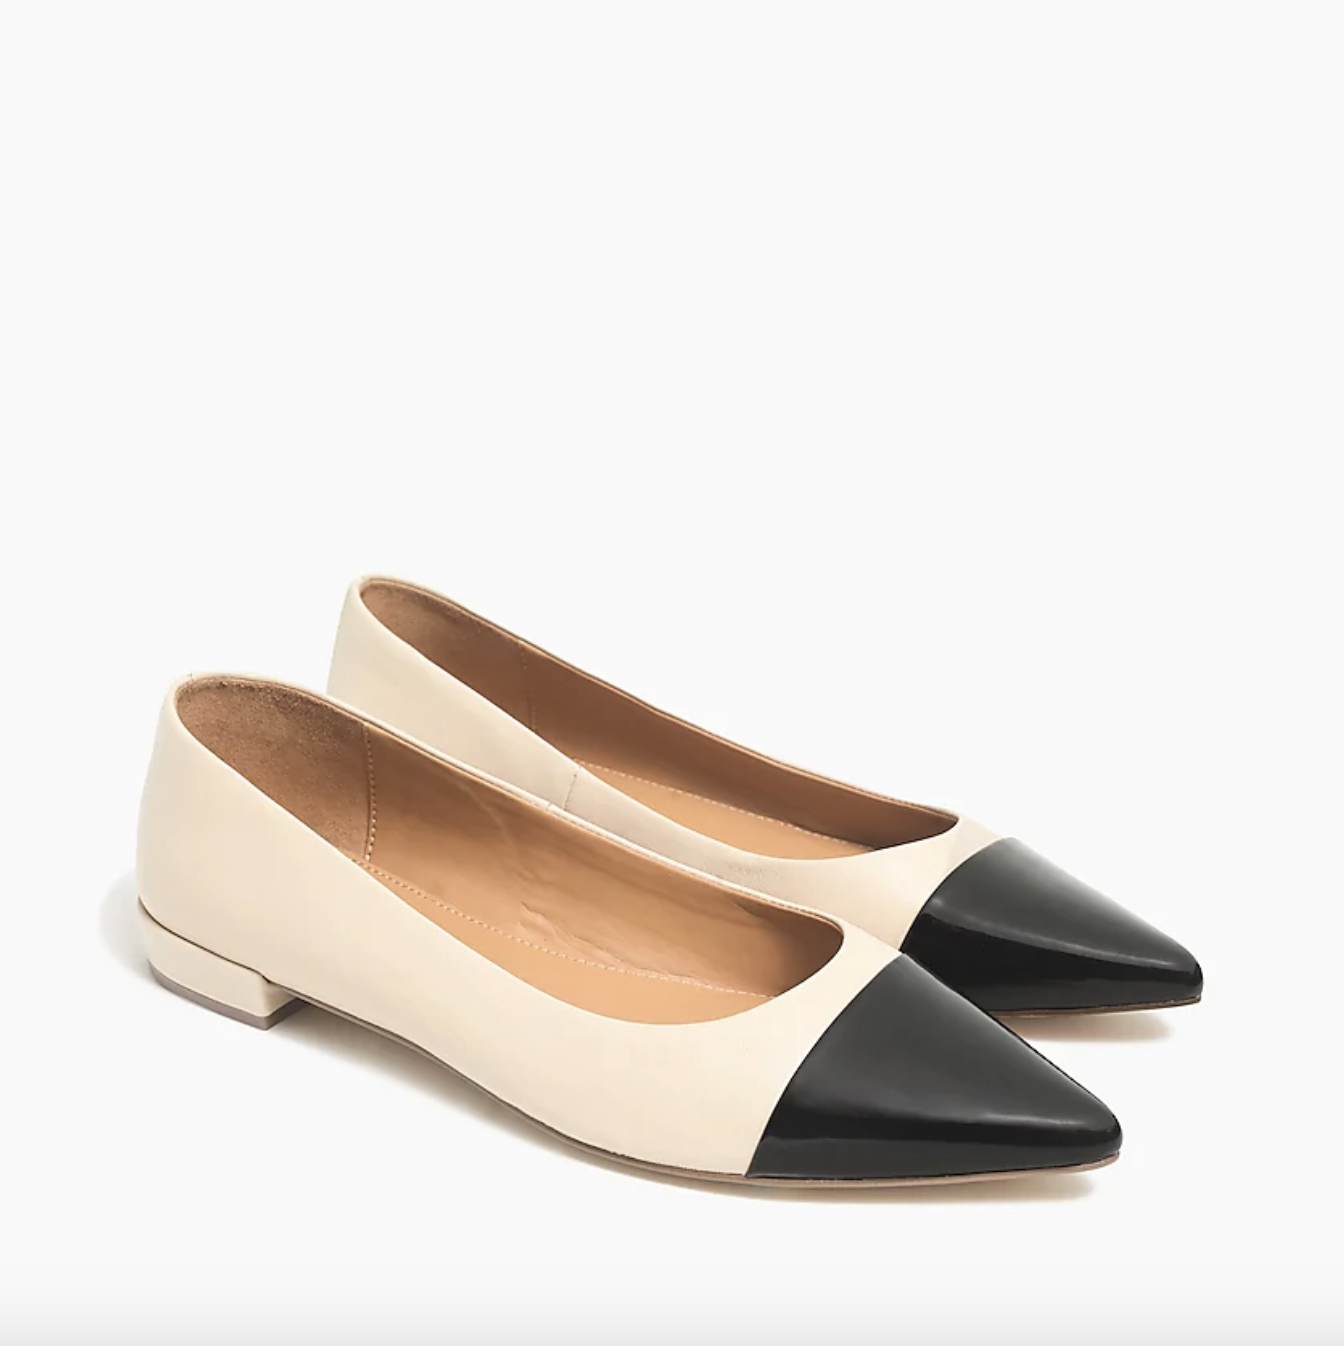 The flats, which have a nude body and a black pointed toe, against a plain background